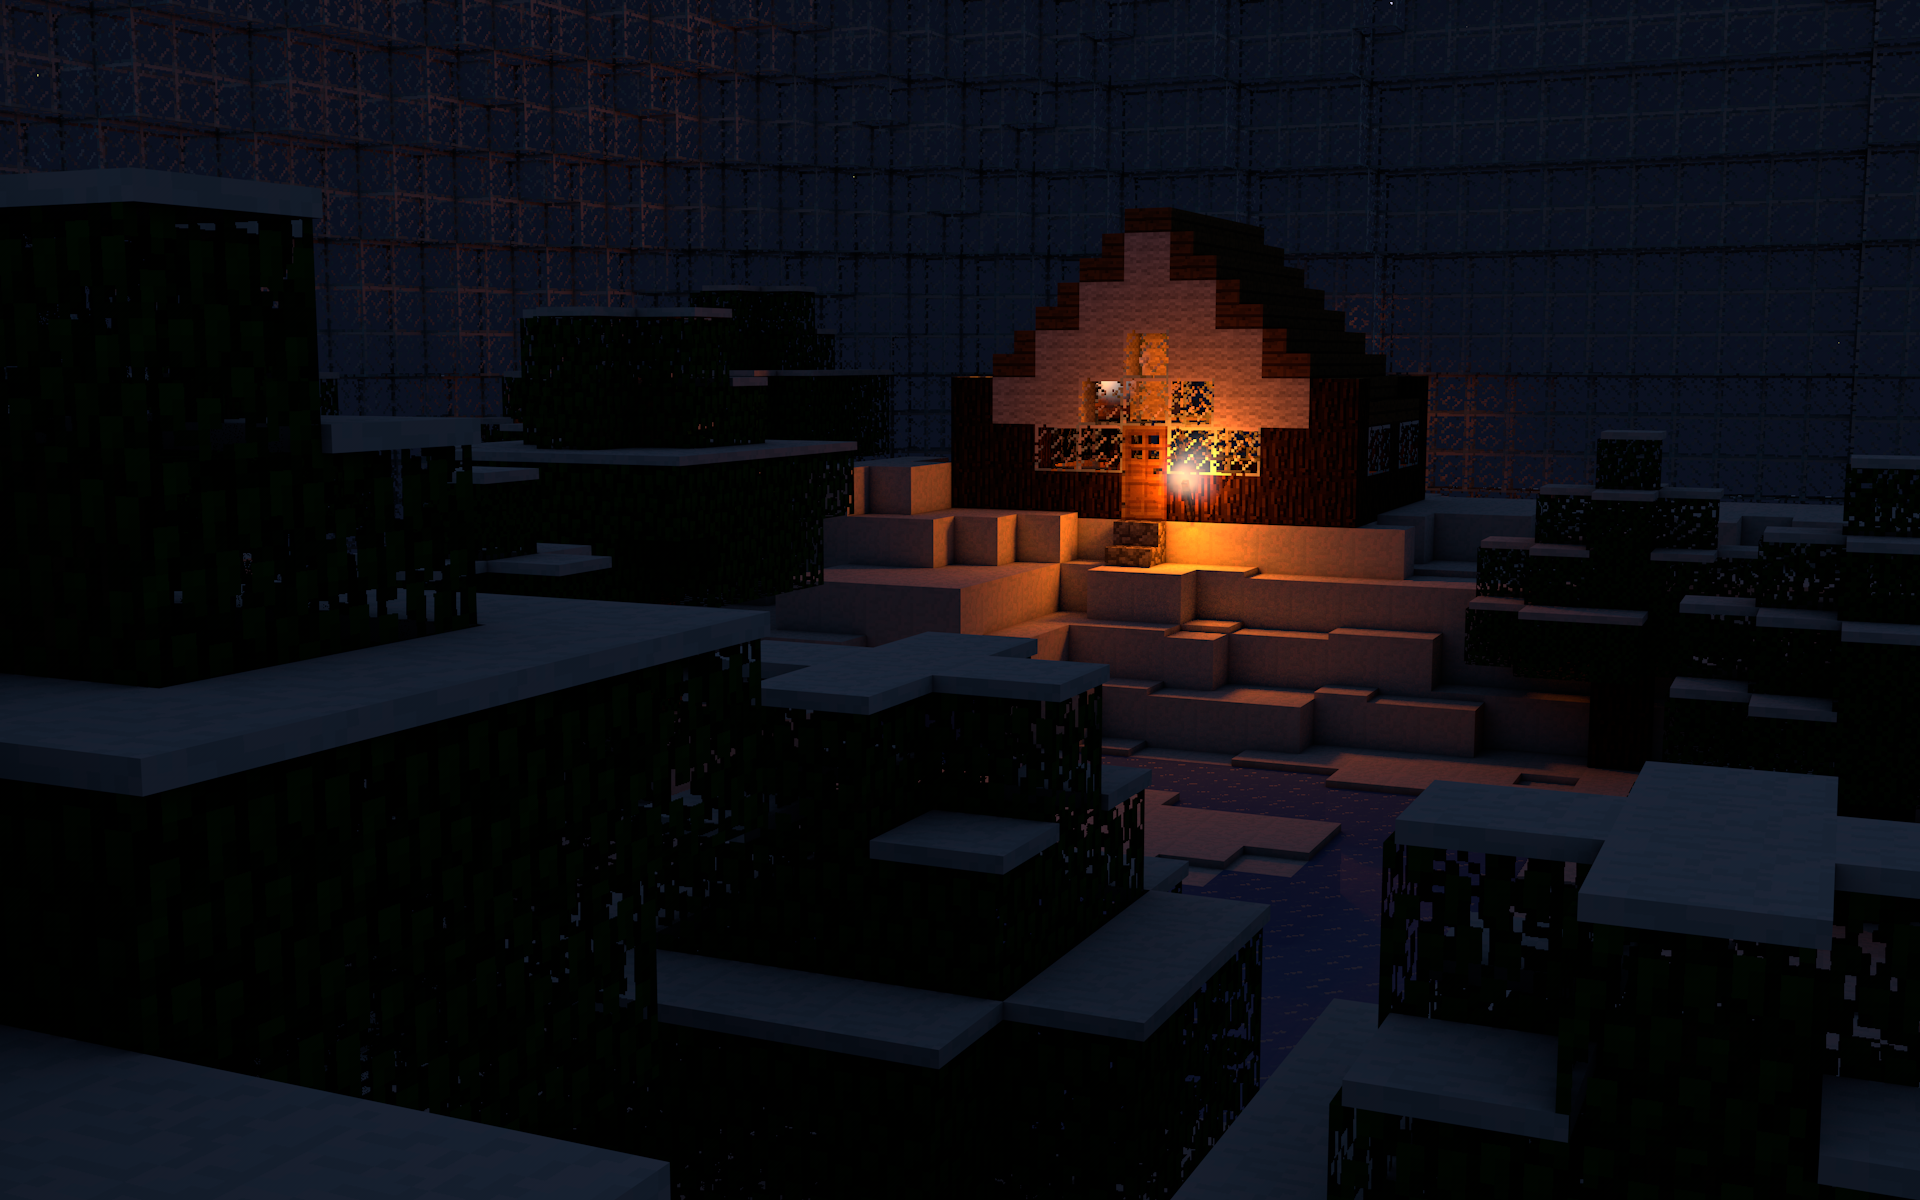 Amazing Wallpaper Minecraft Night - lonely_night_in_minecraft__by_xmax247-d5ksm9y  Image_771192.png